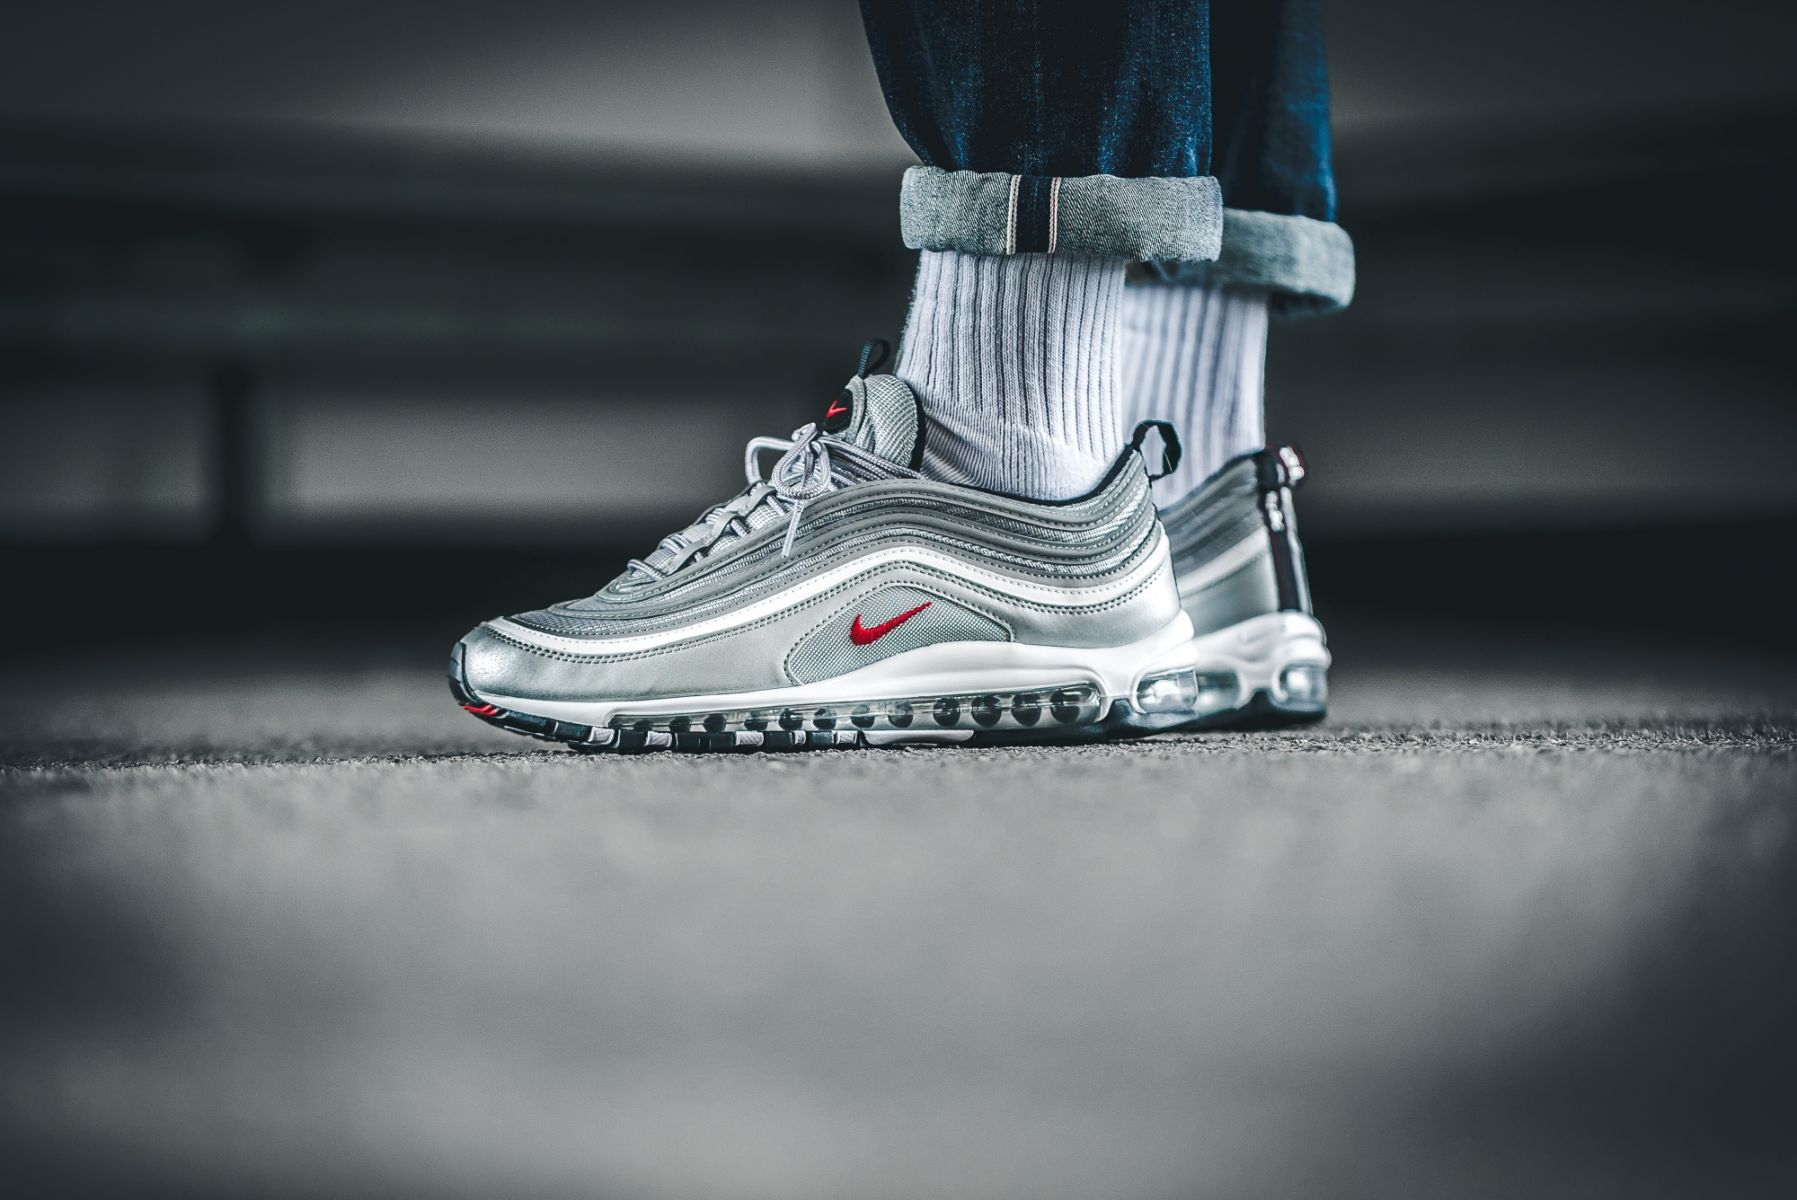 73a543ba75e04c Which particular train system inspired the Metallic Silver OG colorway of  the Air Max 97  Japanese Bullet Trains